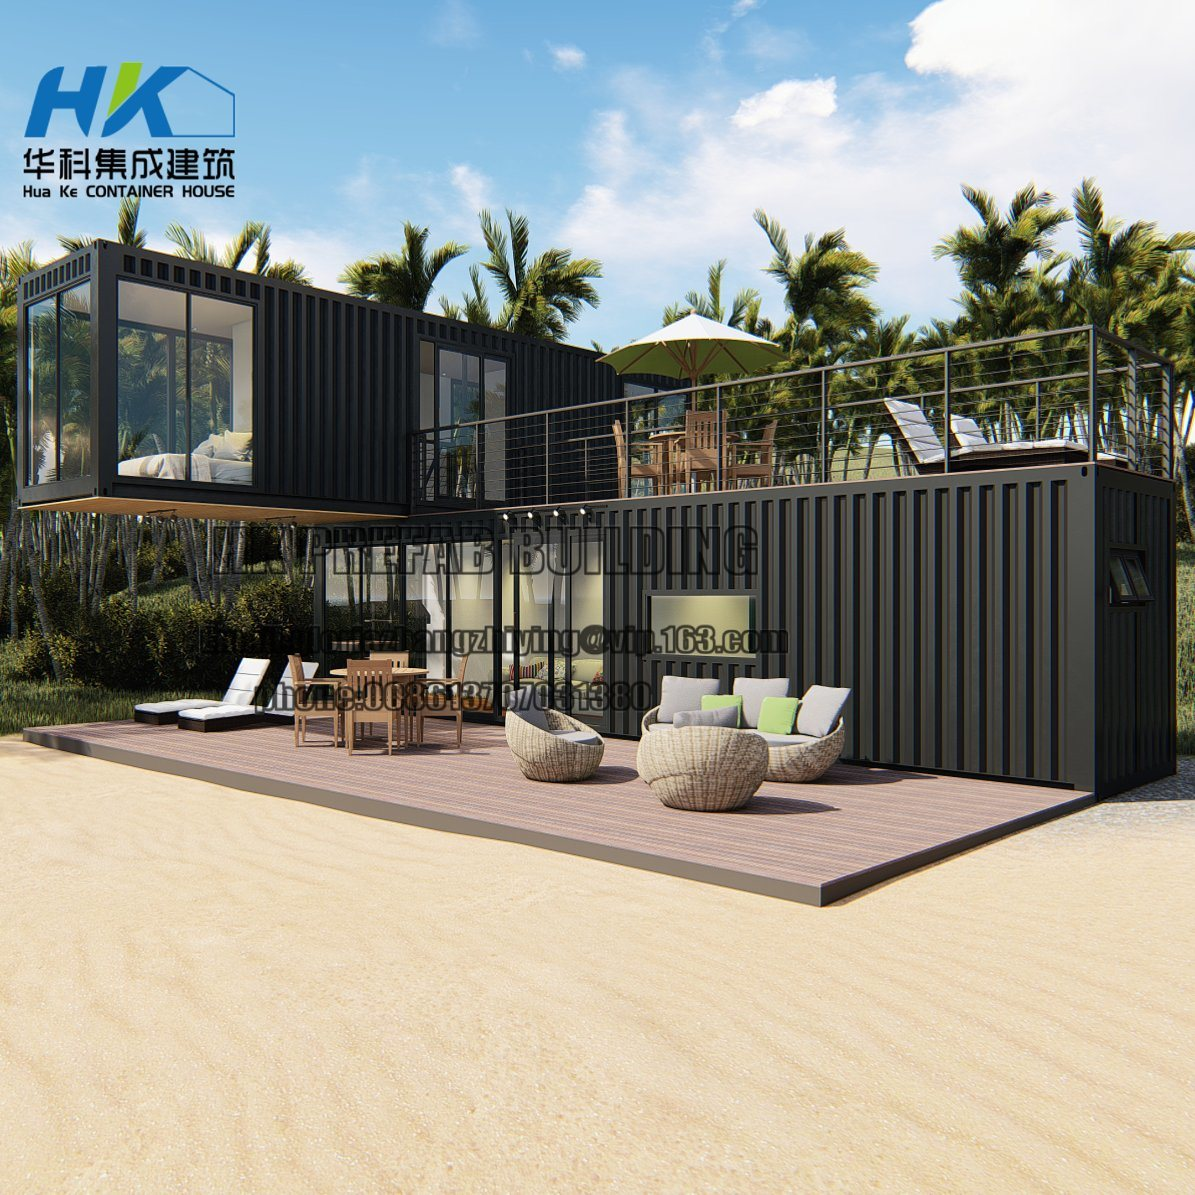 40 Feet Container Homes: China 2X 40FT New High Quality Modular Prefab